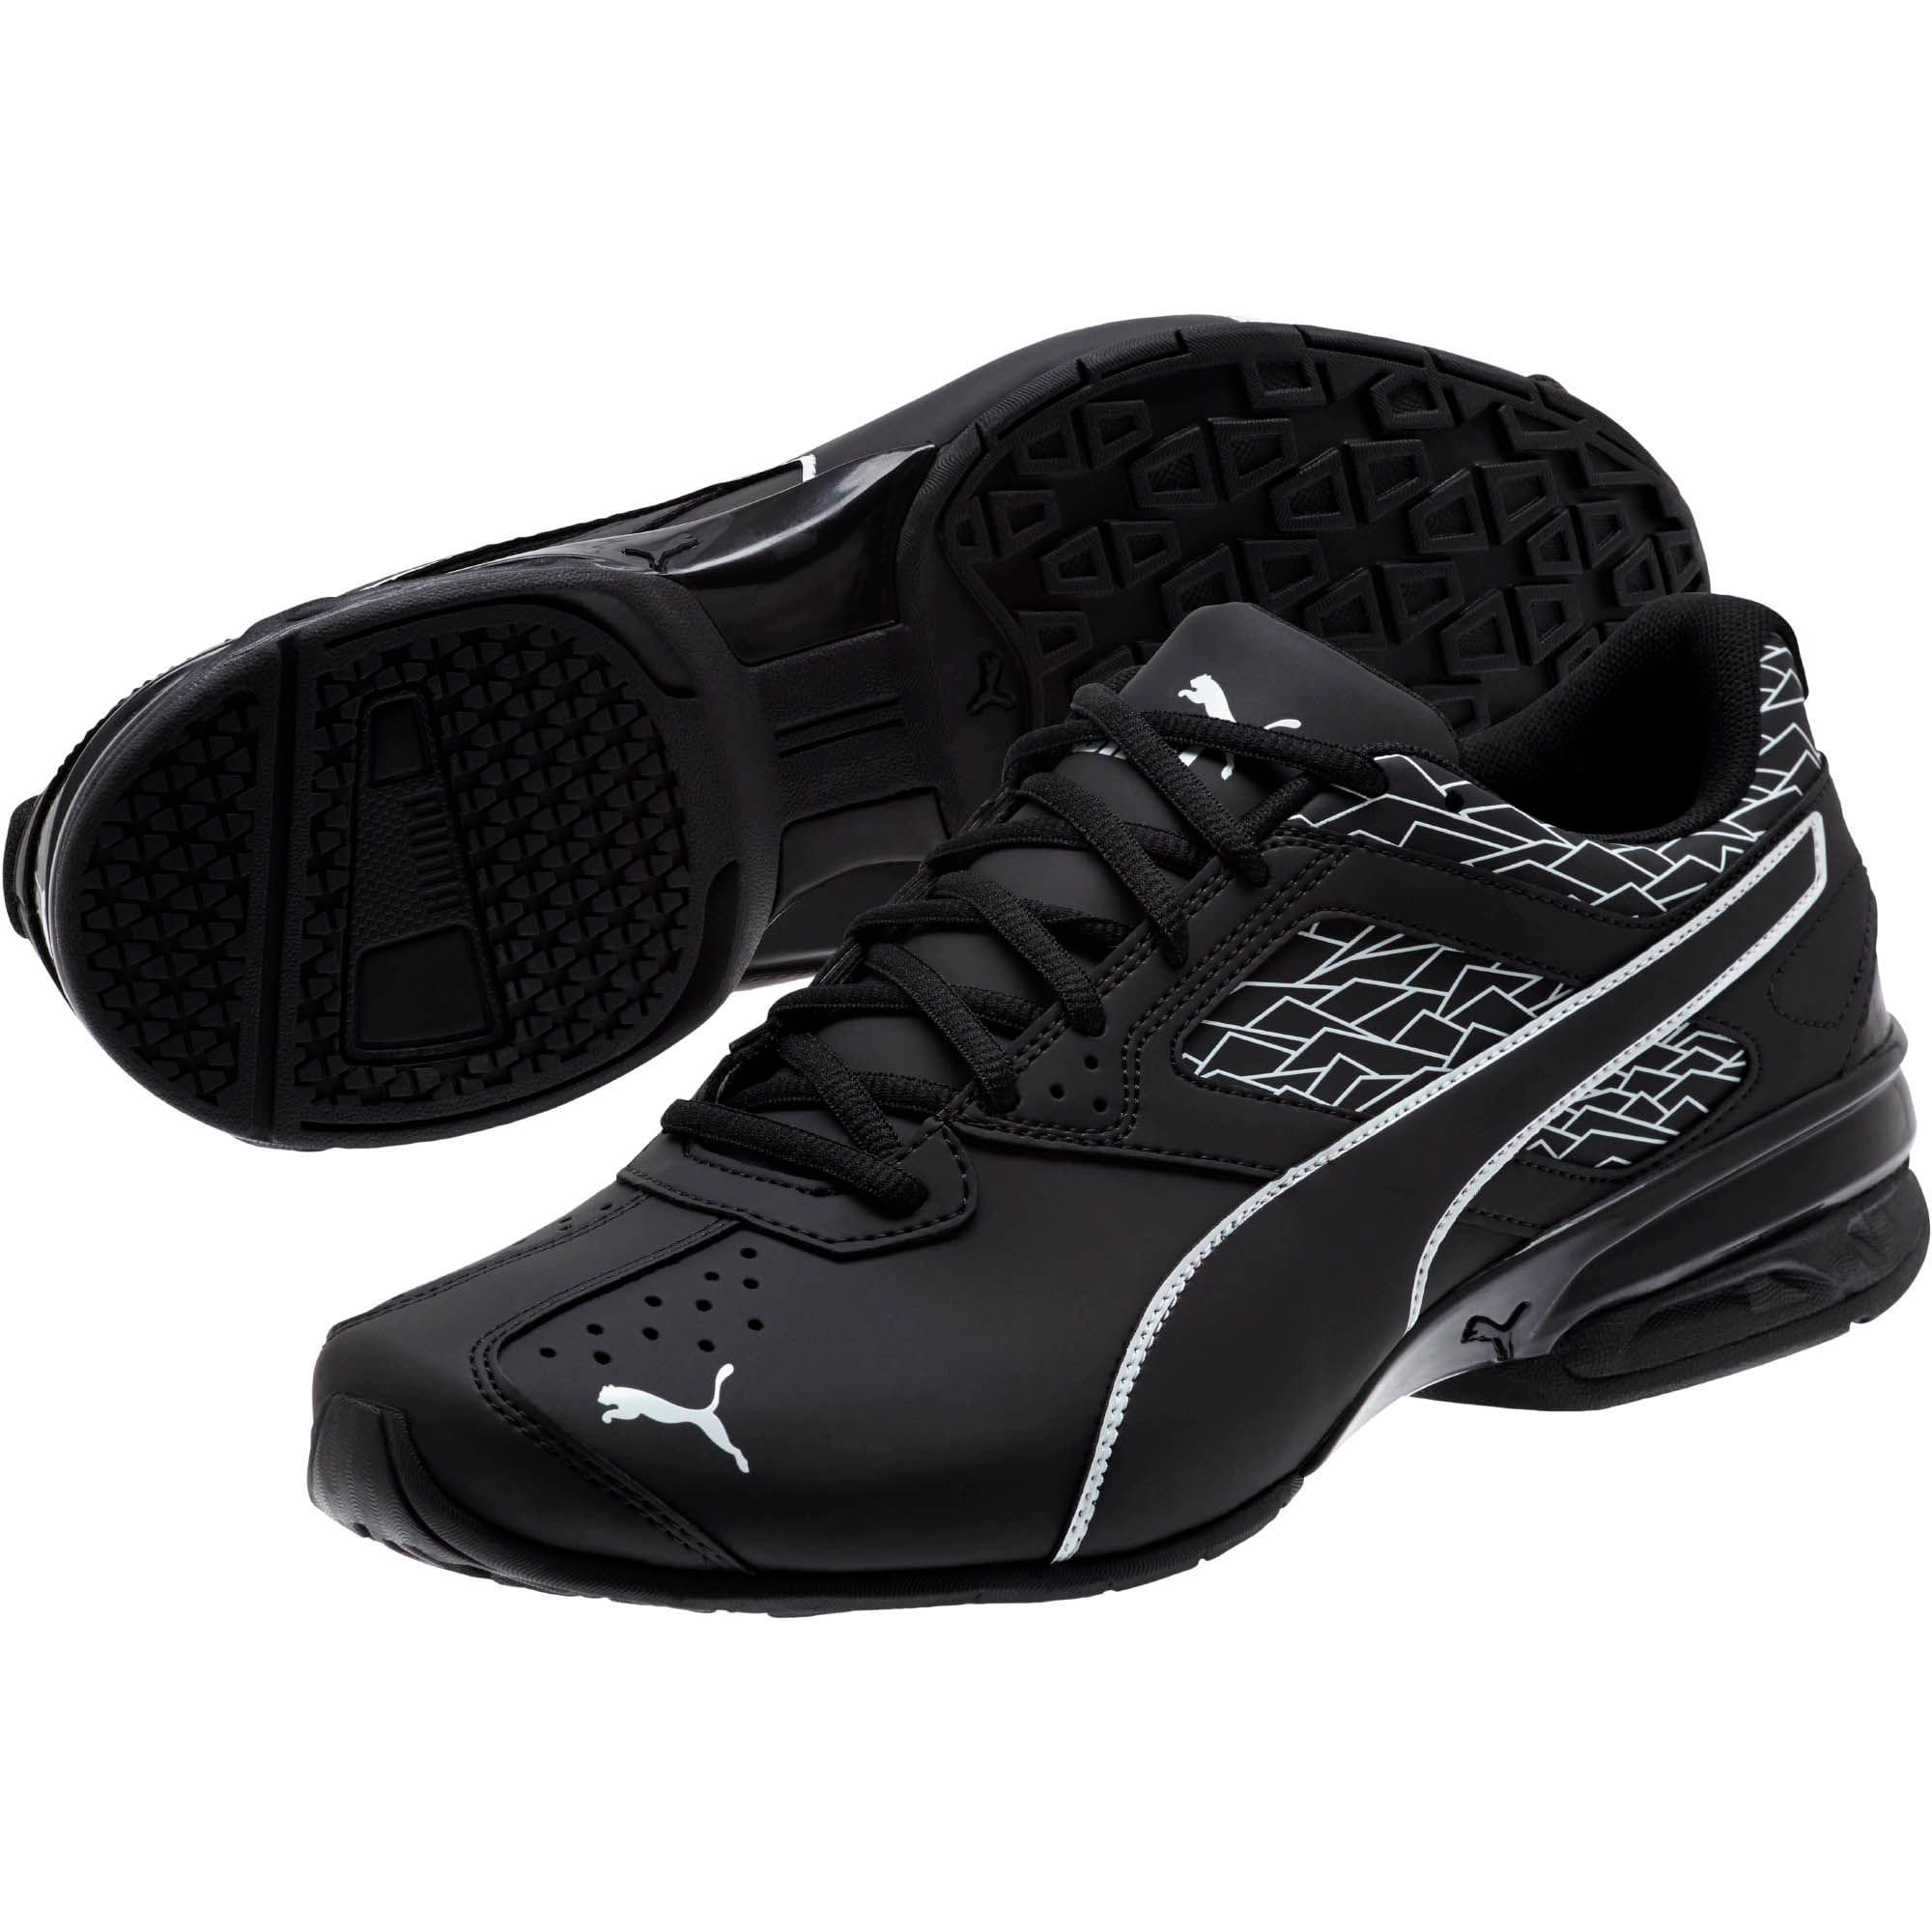 Thumbnail 2 of Tazon 6 Fracture FM Men's Sneakers, Puma Black-Puma Black, medium